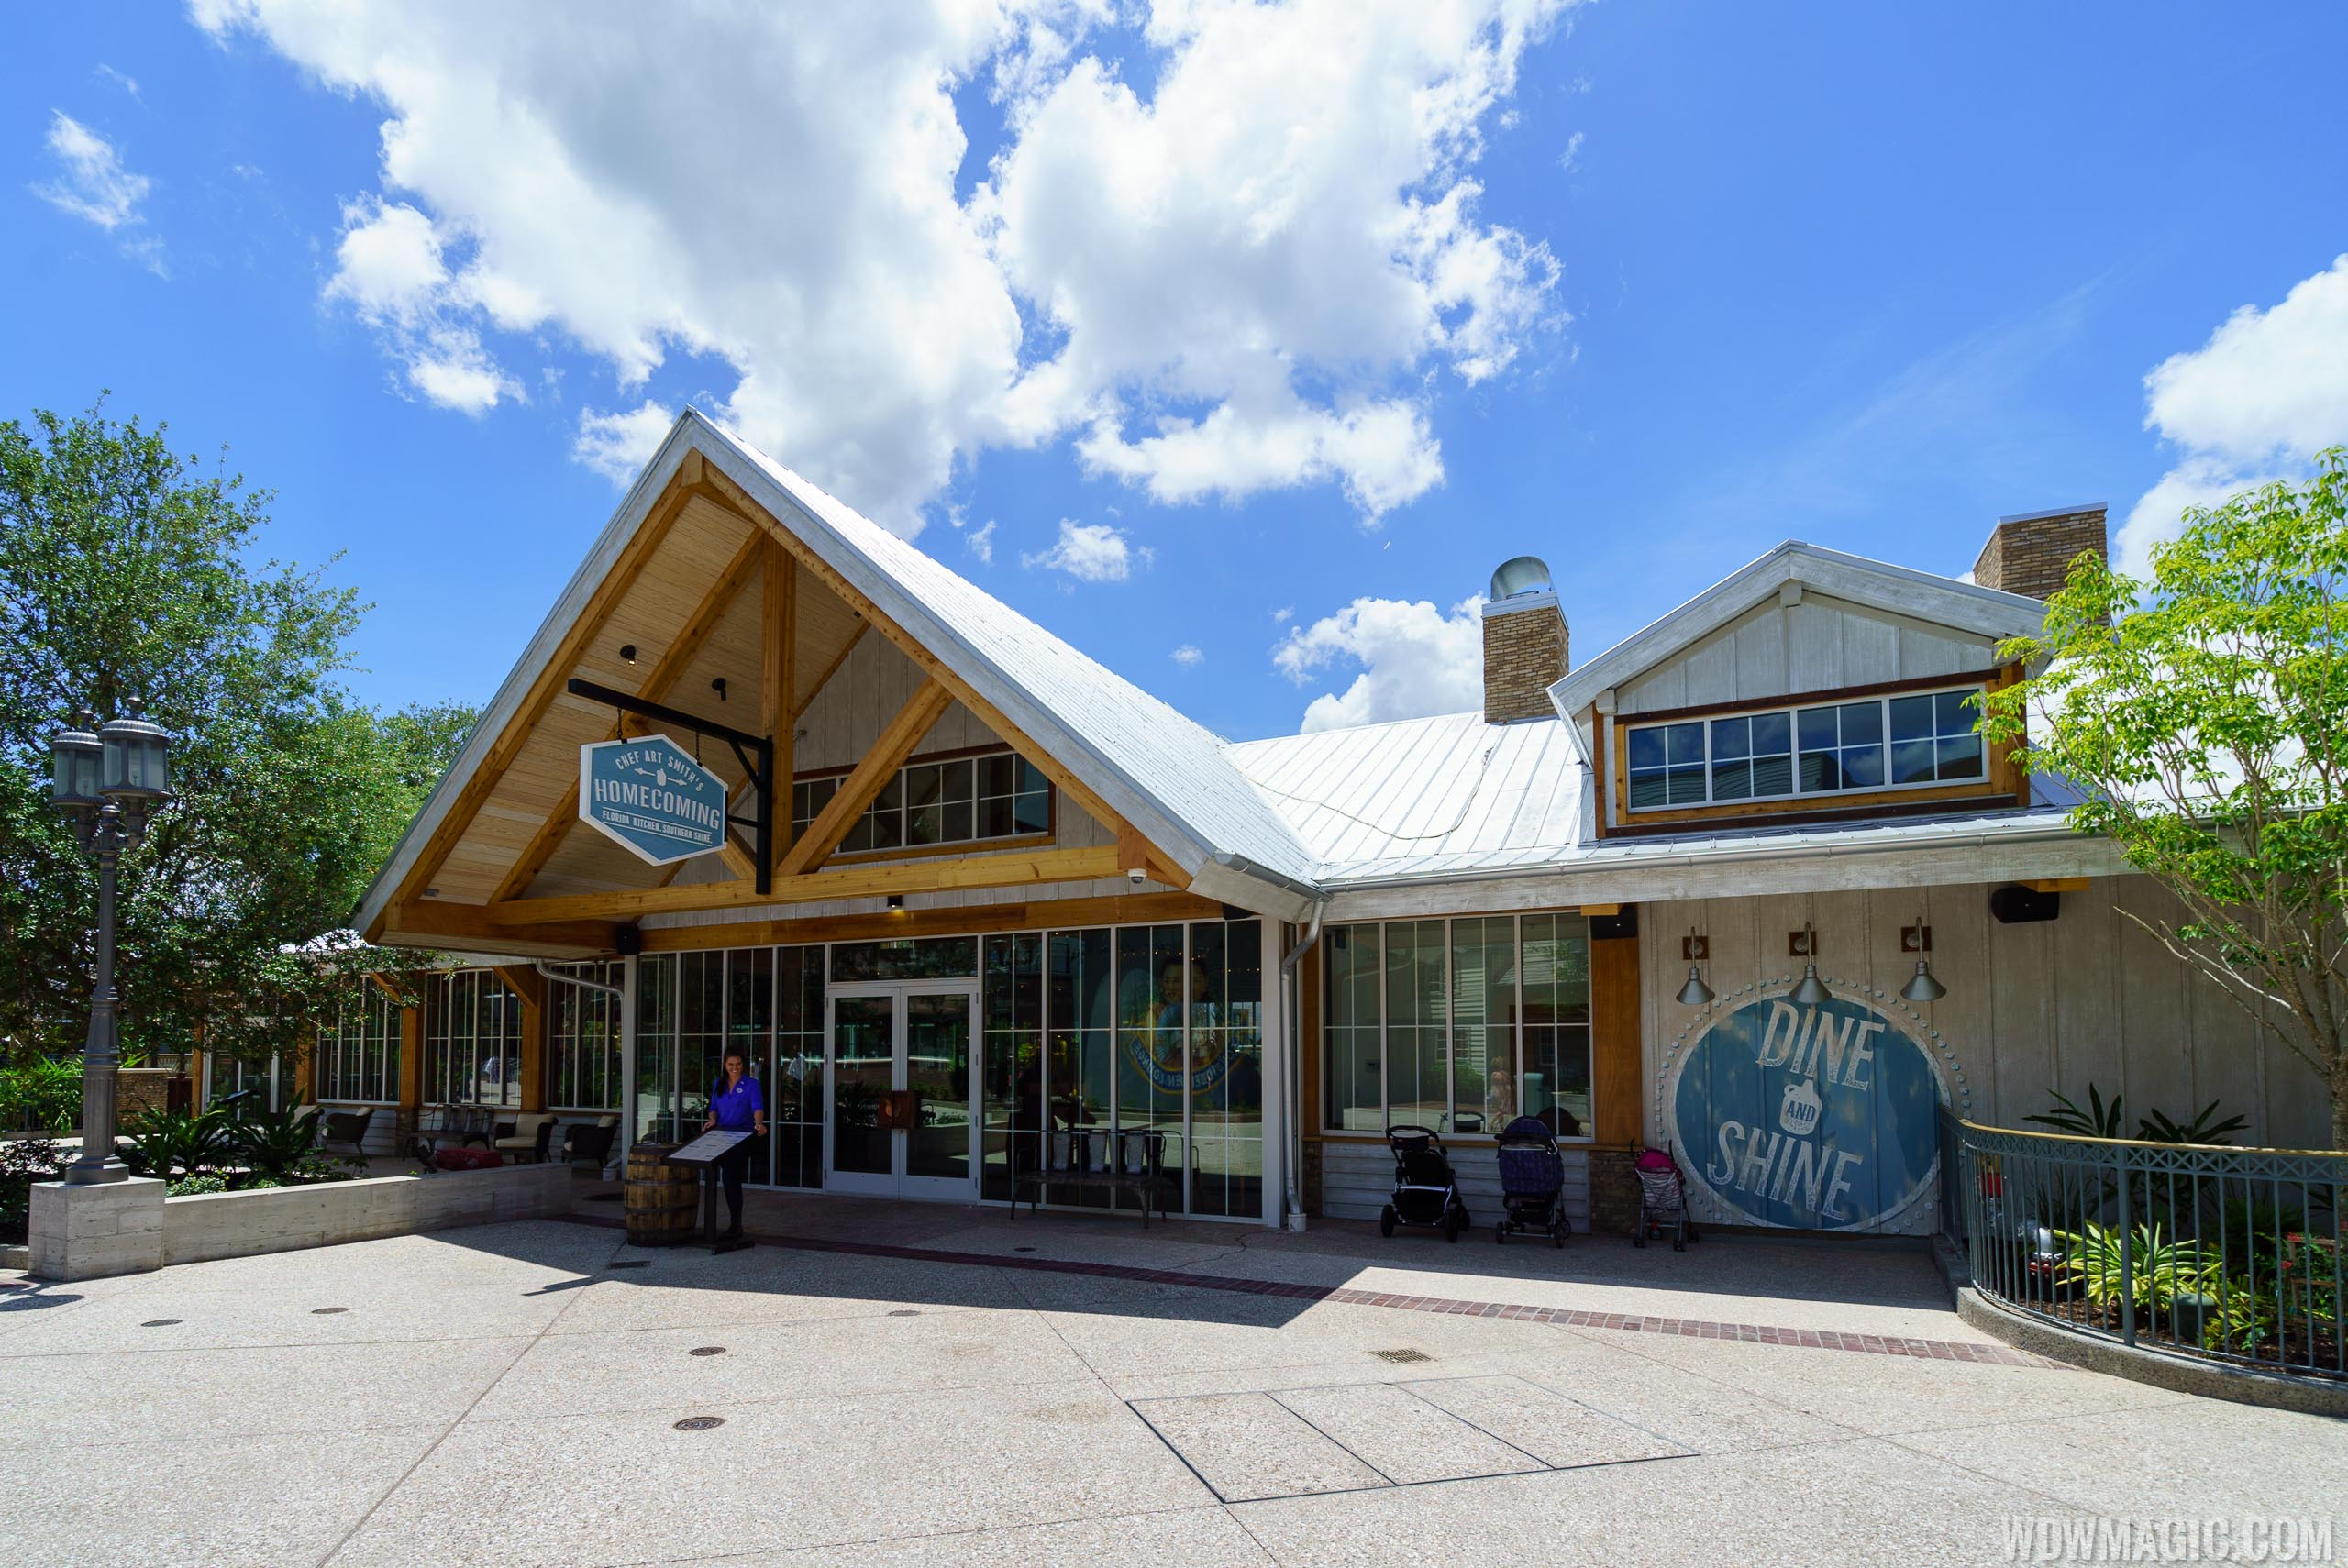 Homecoming: Florida Kitchen and Shine Bar at Disney Springs